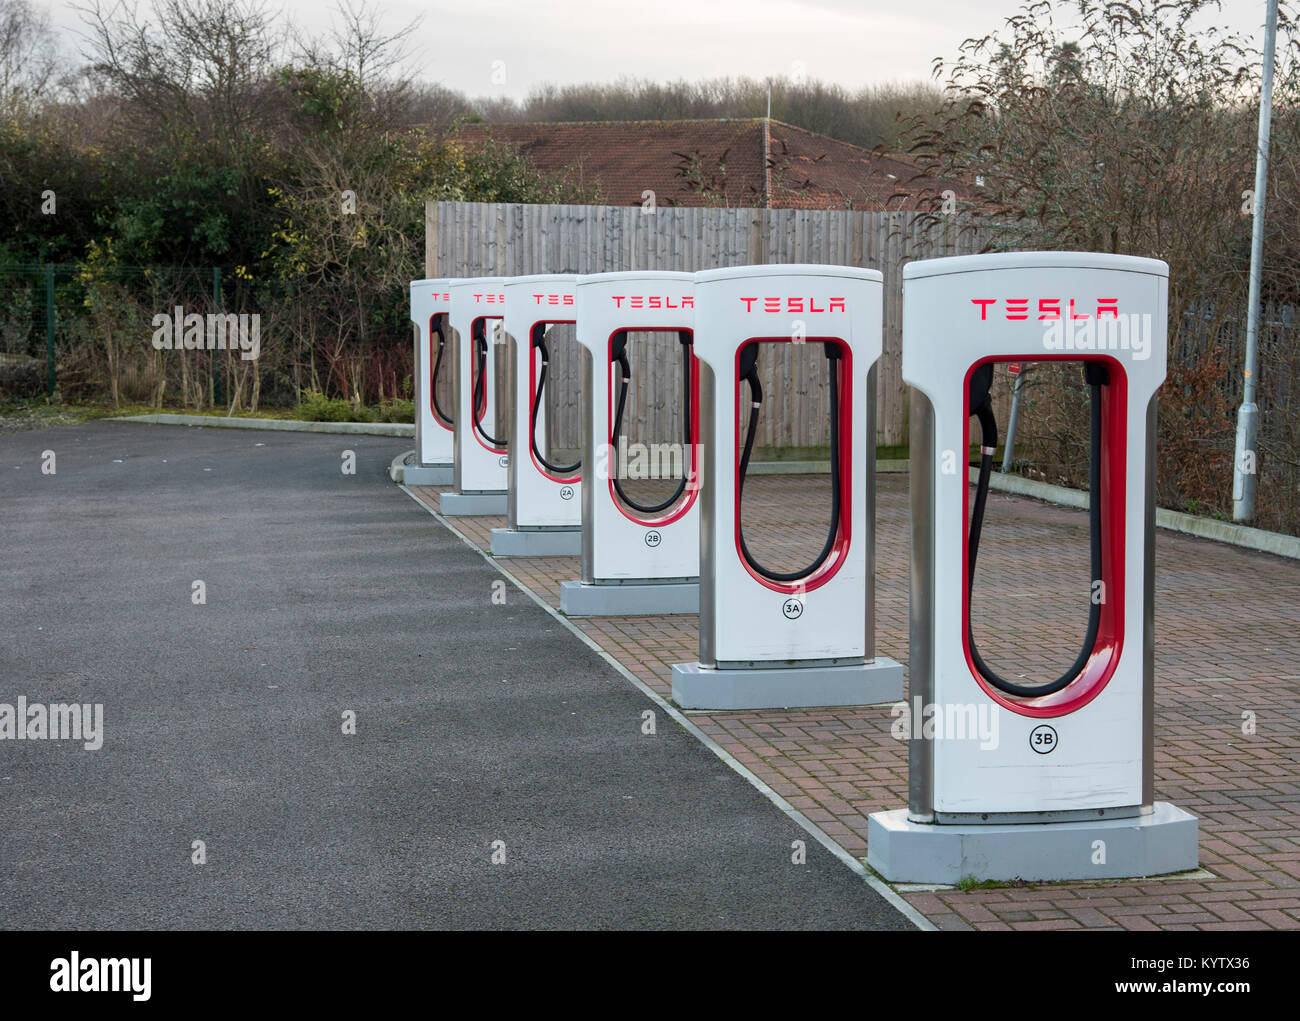 Picture shows a Tesla Supercharger point for electric vehicles in a car park in Maidstone Kent - Stock Image